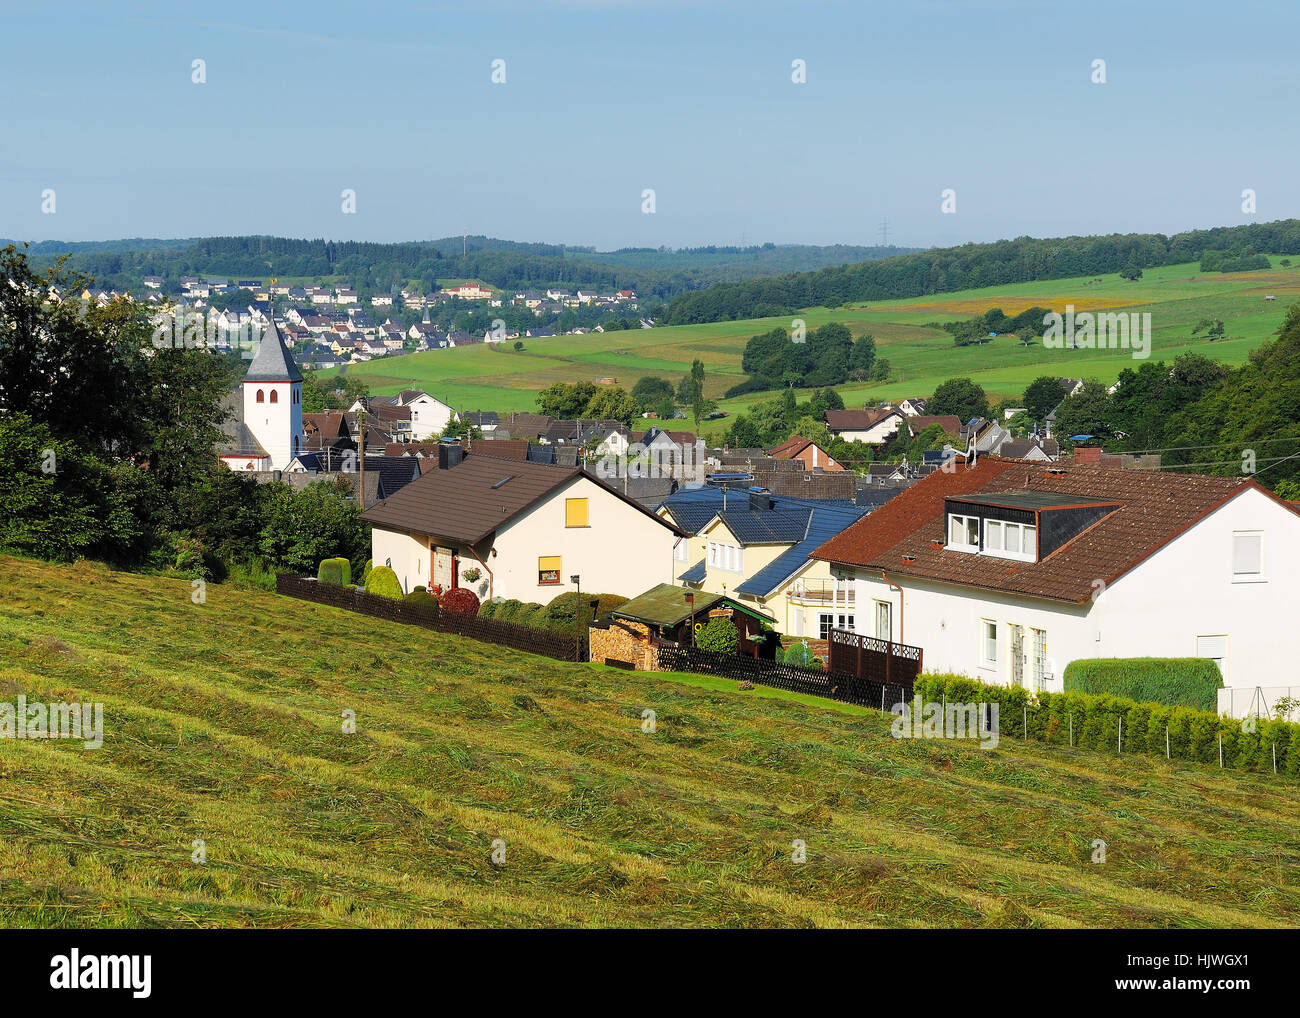 highlands, community, village, market town, field, hike, go hiking, ramble, - Stock Image